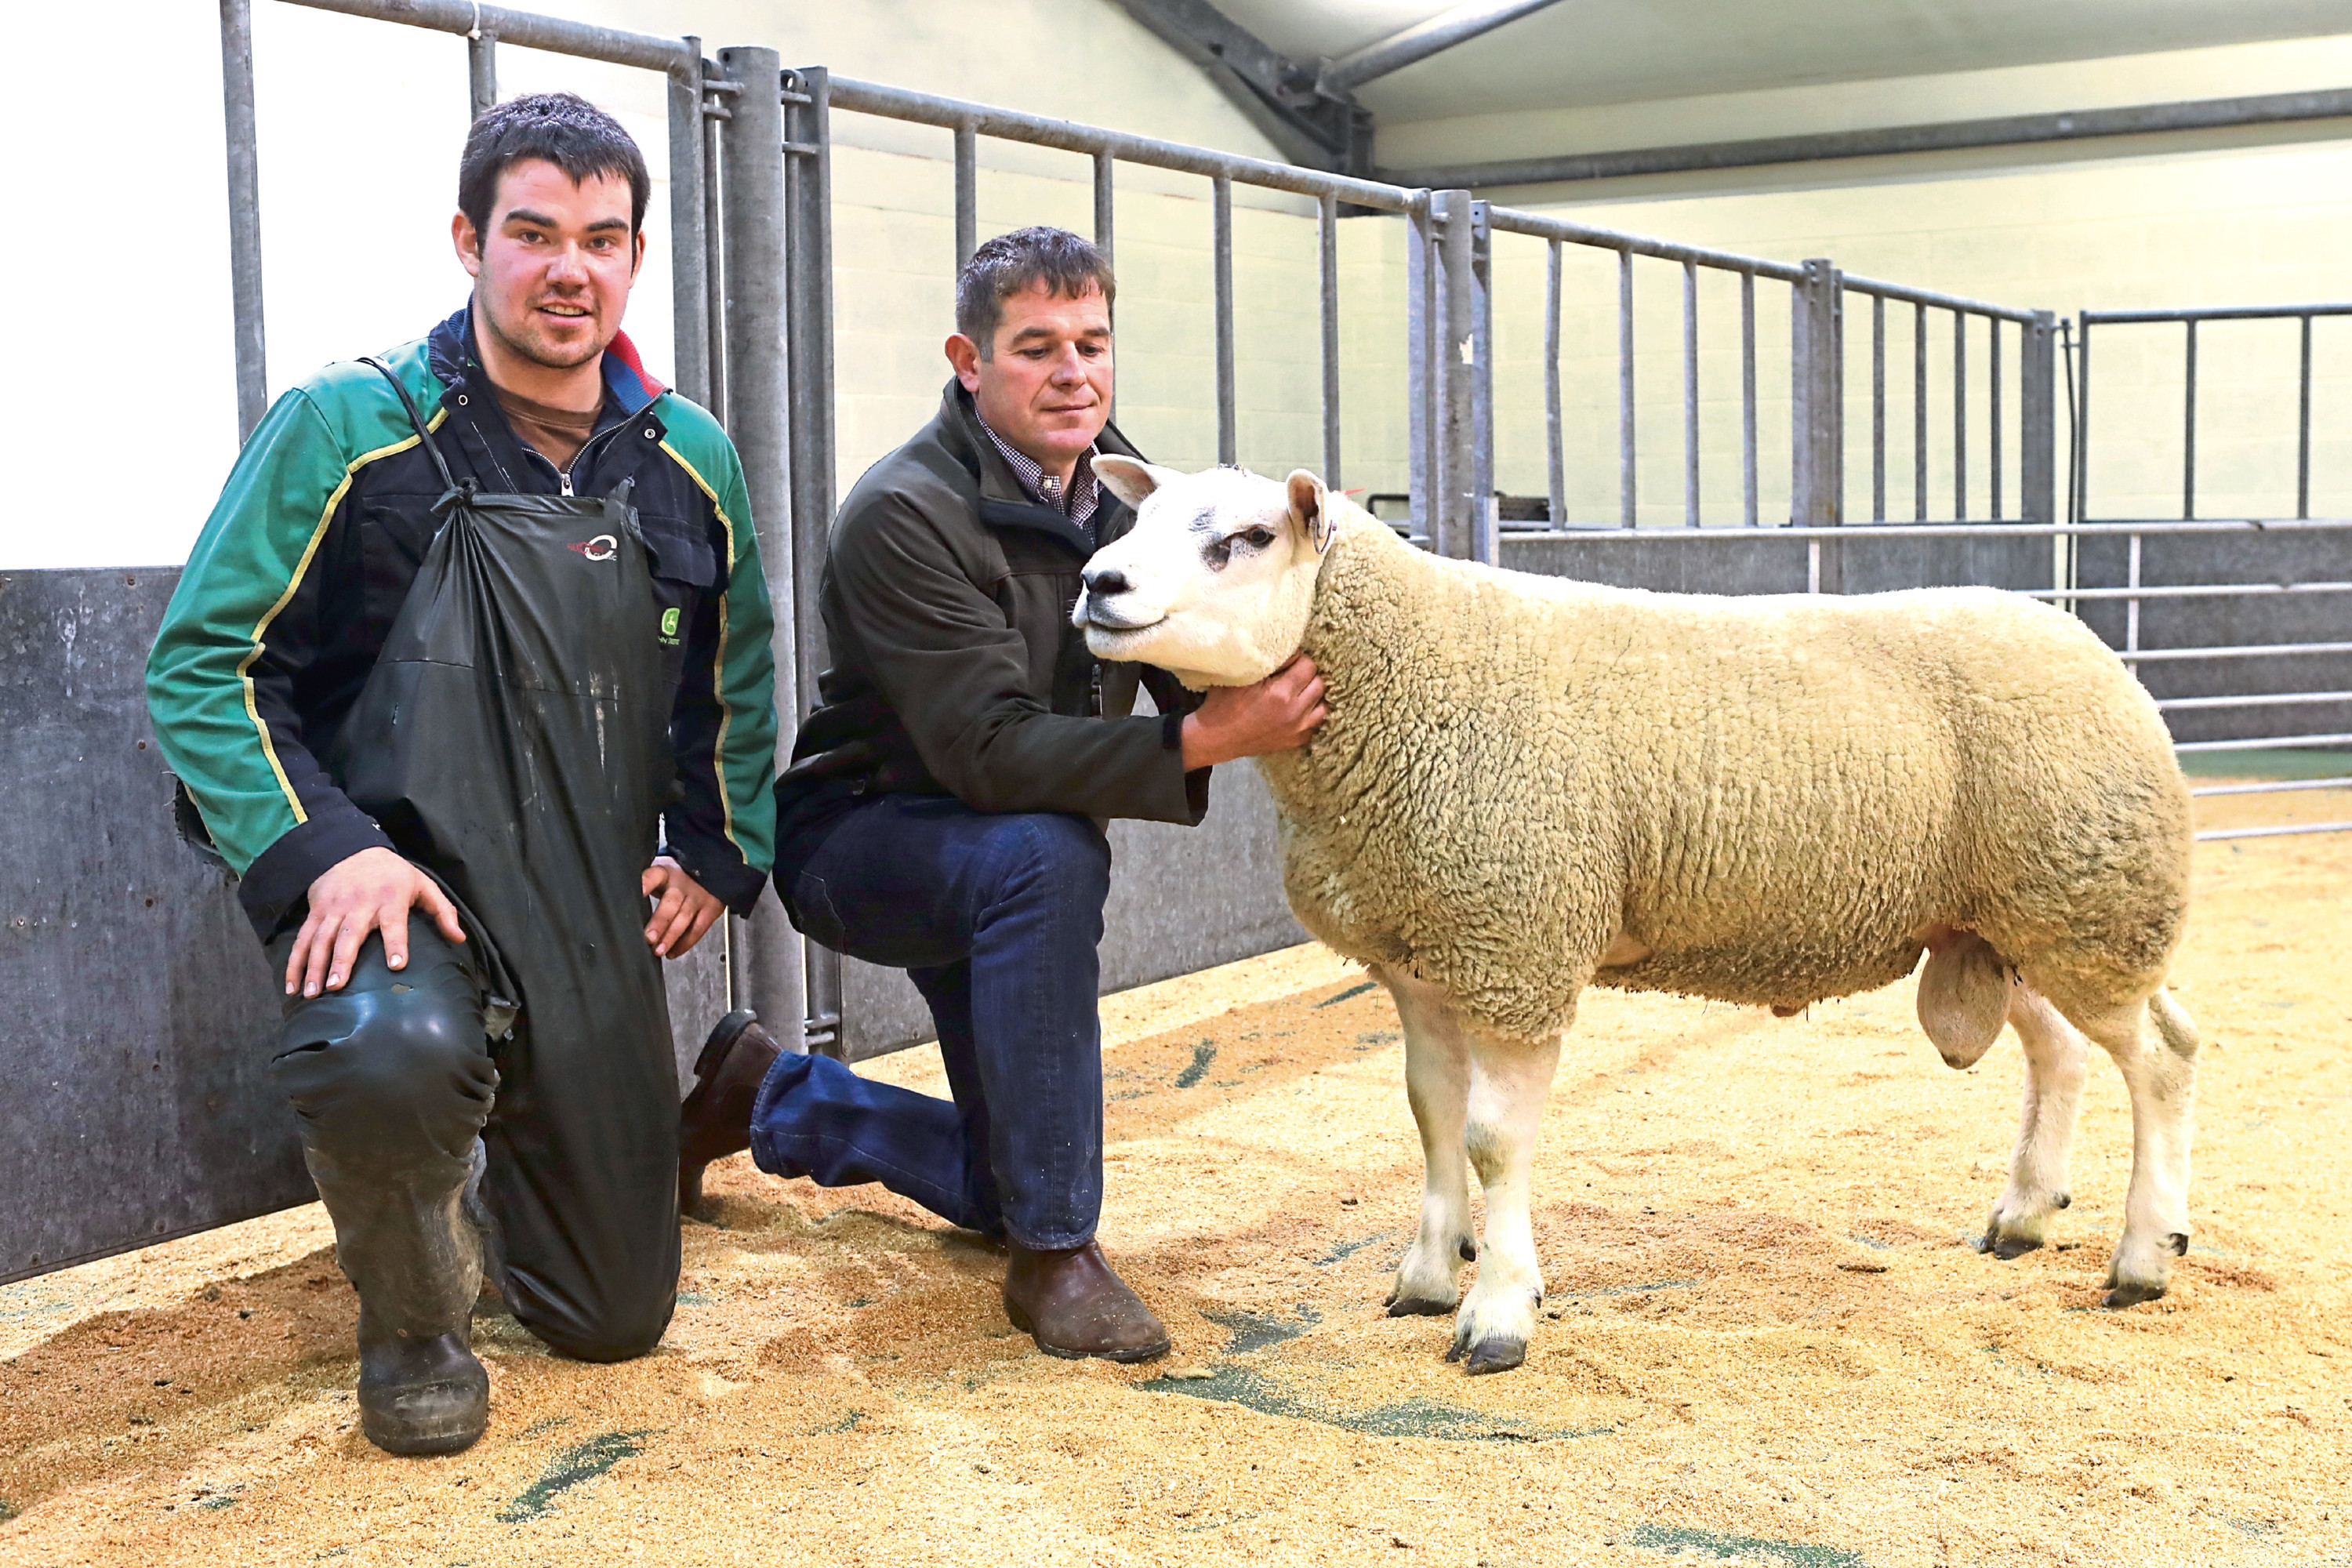 Douglas Paterson (left), Veltigar, Tankerness with buyer Robert McNee, Over Finlarg, Tealing, Dundee who paid the record price of £2,200.